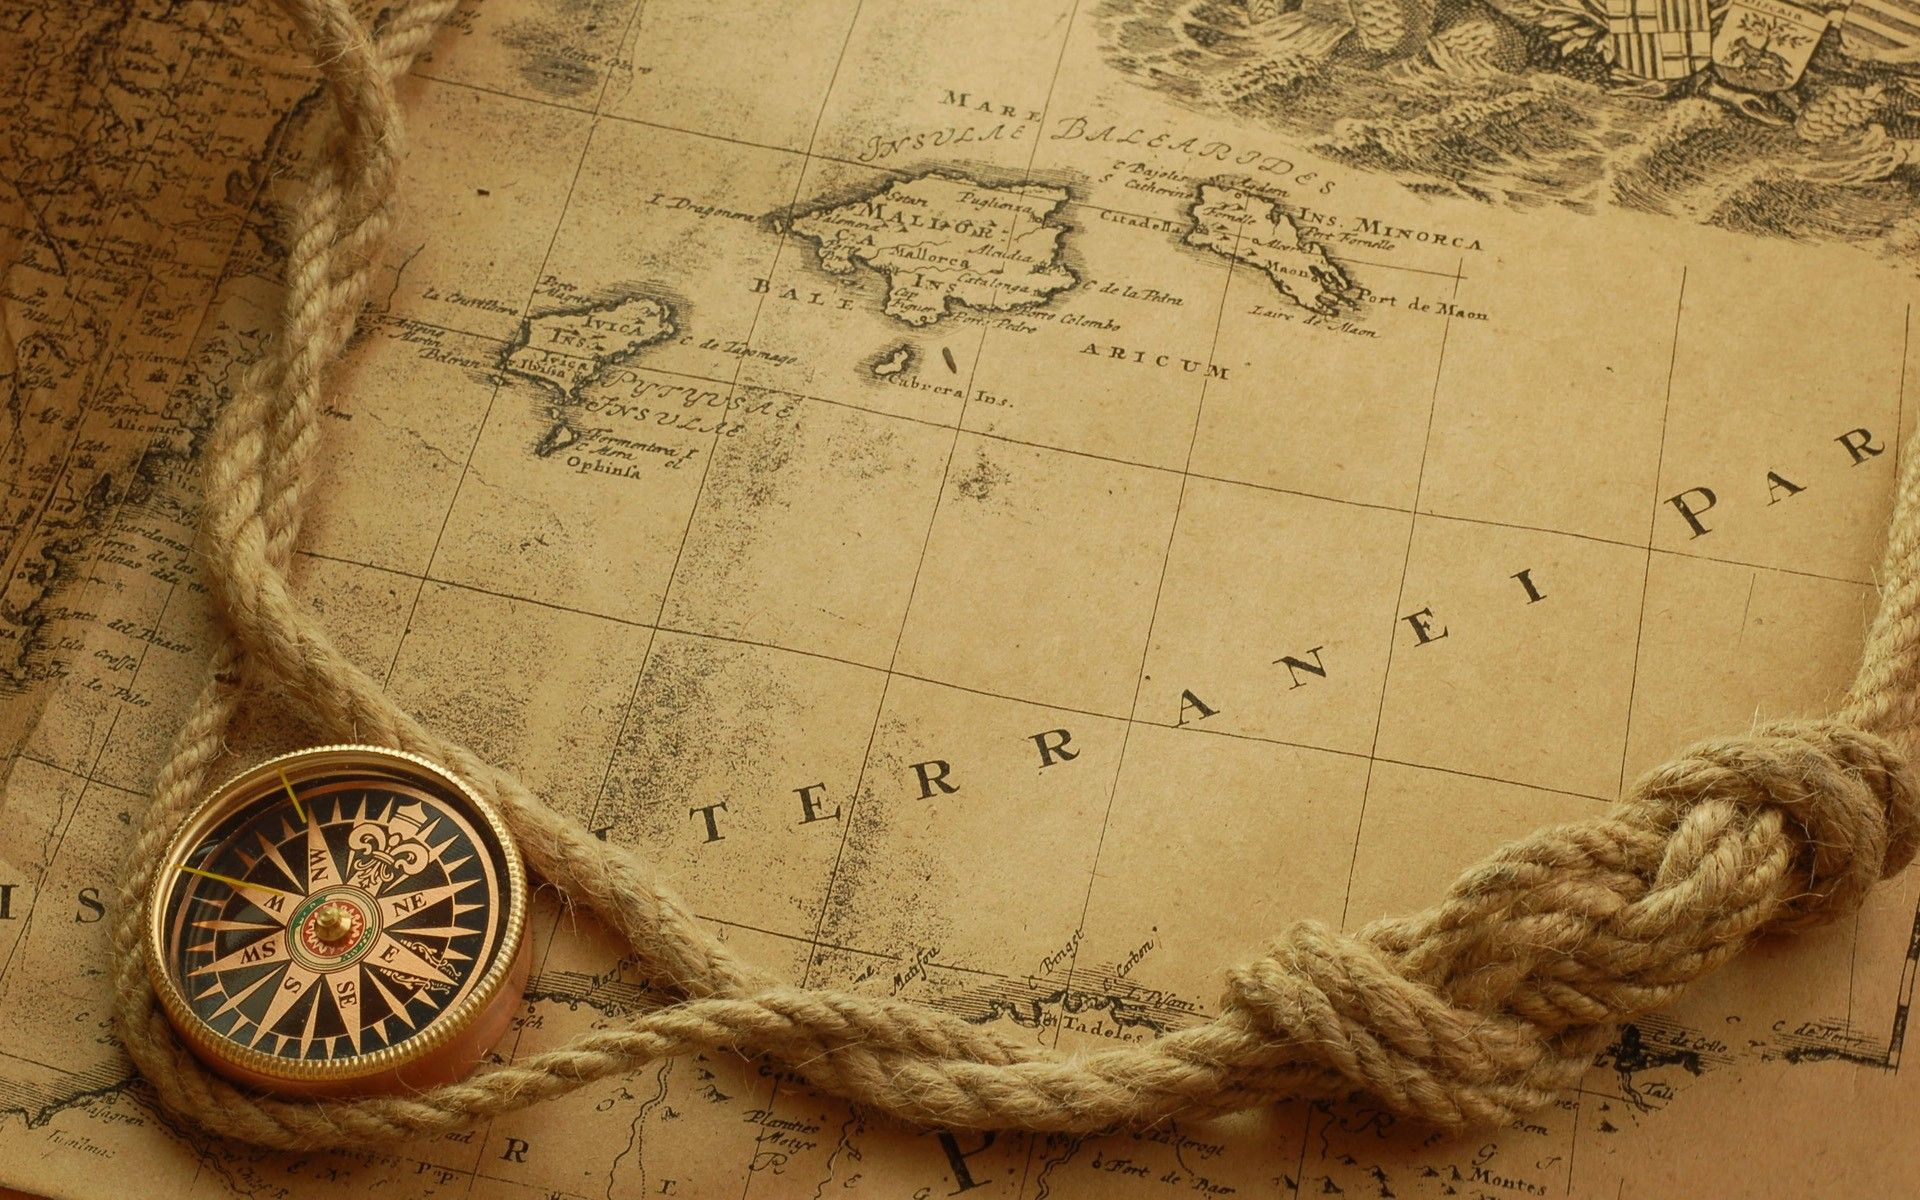 Old Wallpapers | Pirate maps, Old map, Map wallpaper